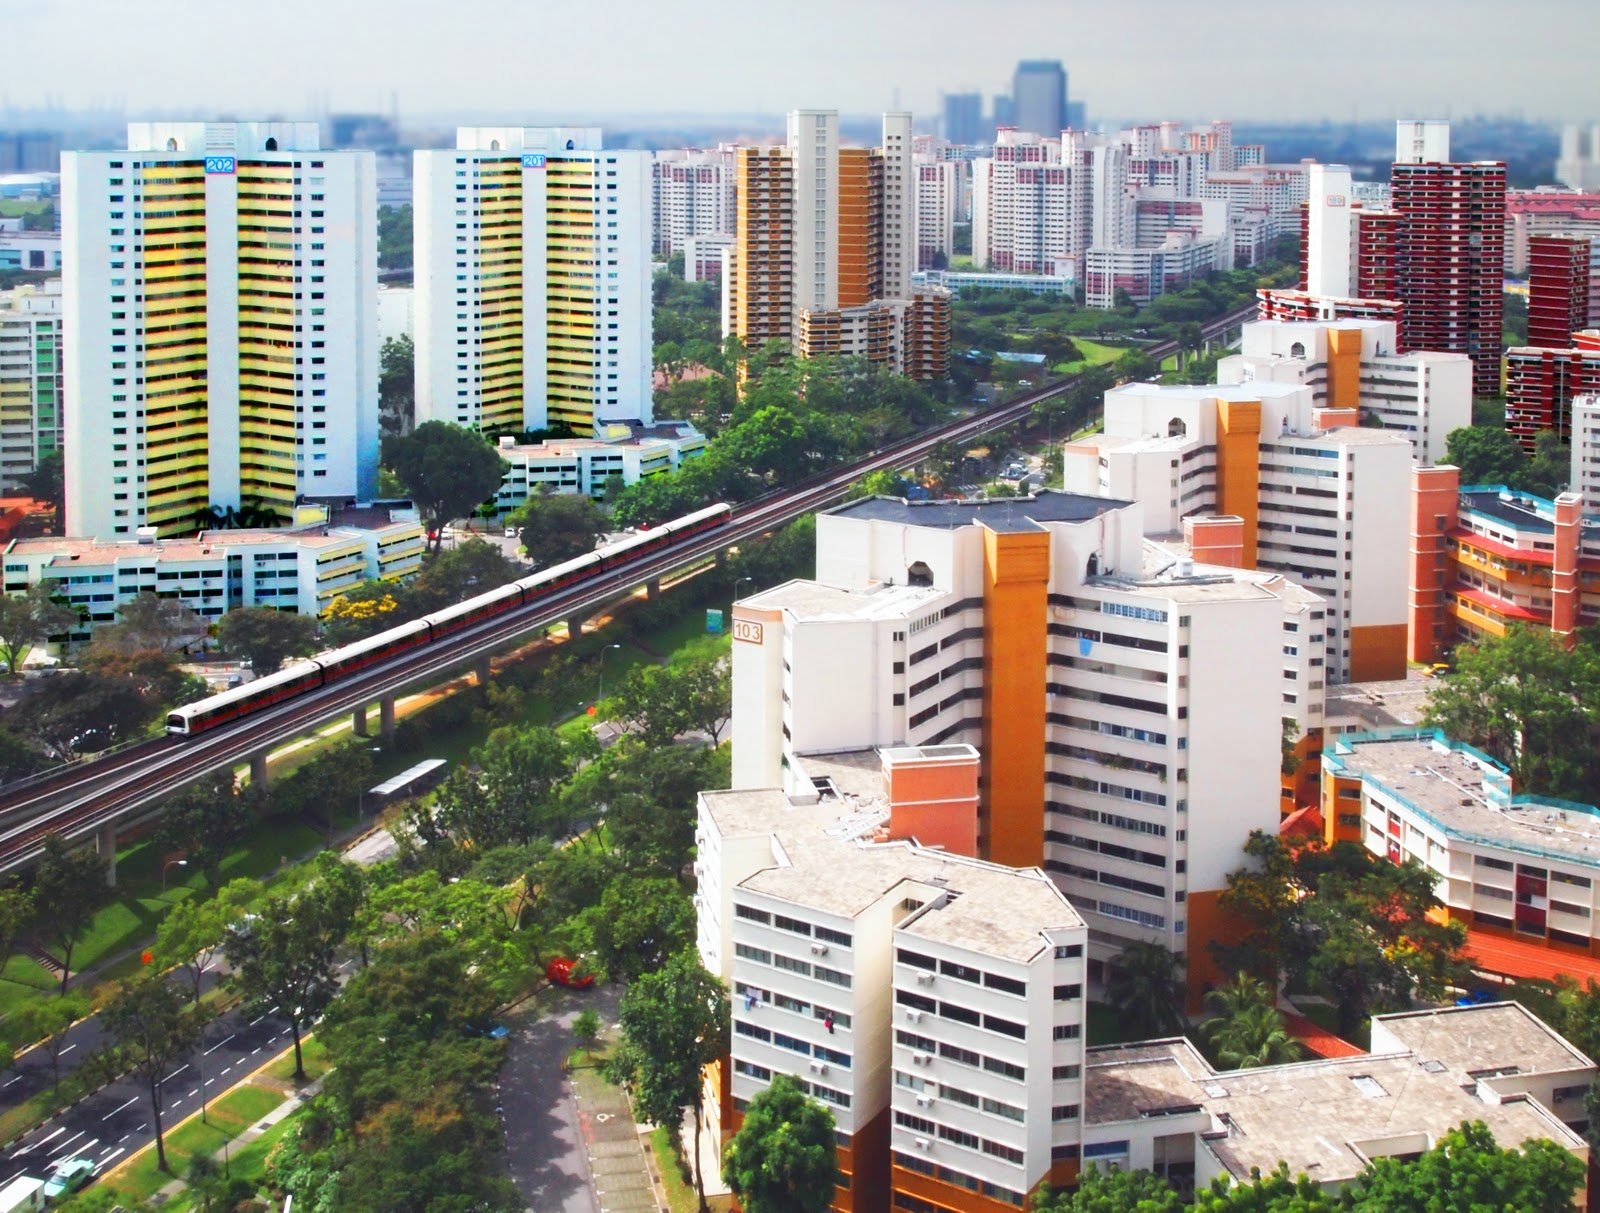 We'd gladly get lost in the picturesque neighbourhood of Bukit Batok